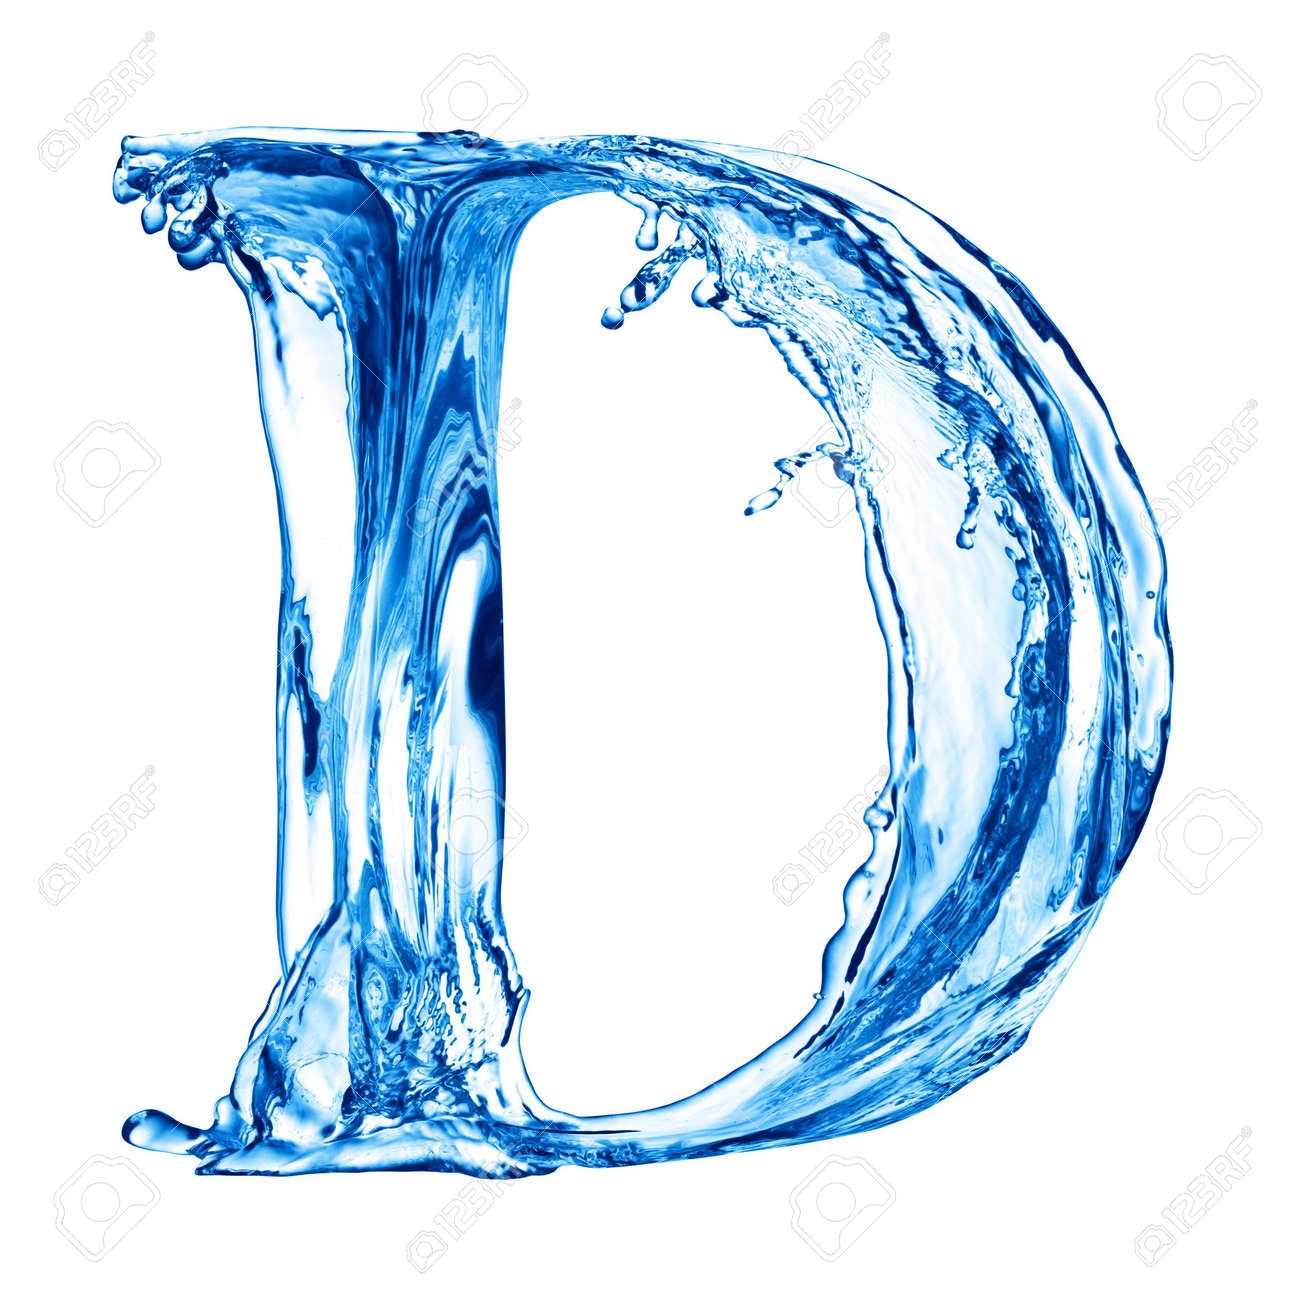 One letter of water alphabet Stock Photo - 4592784